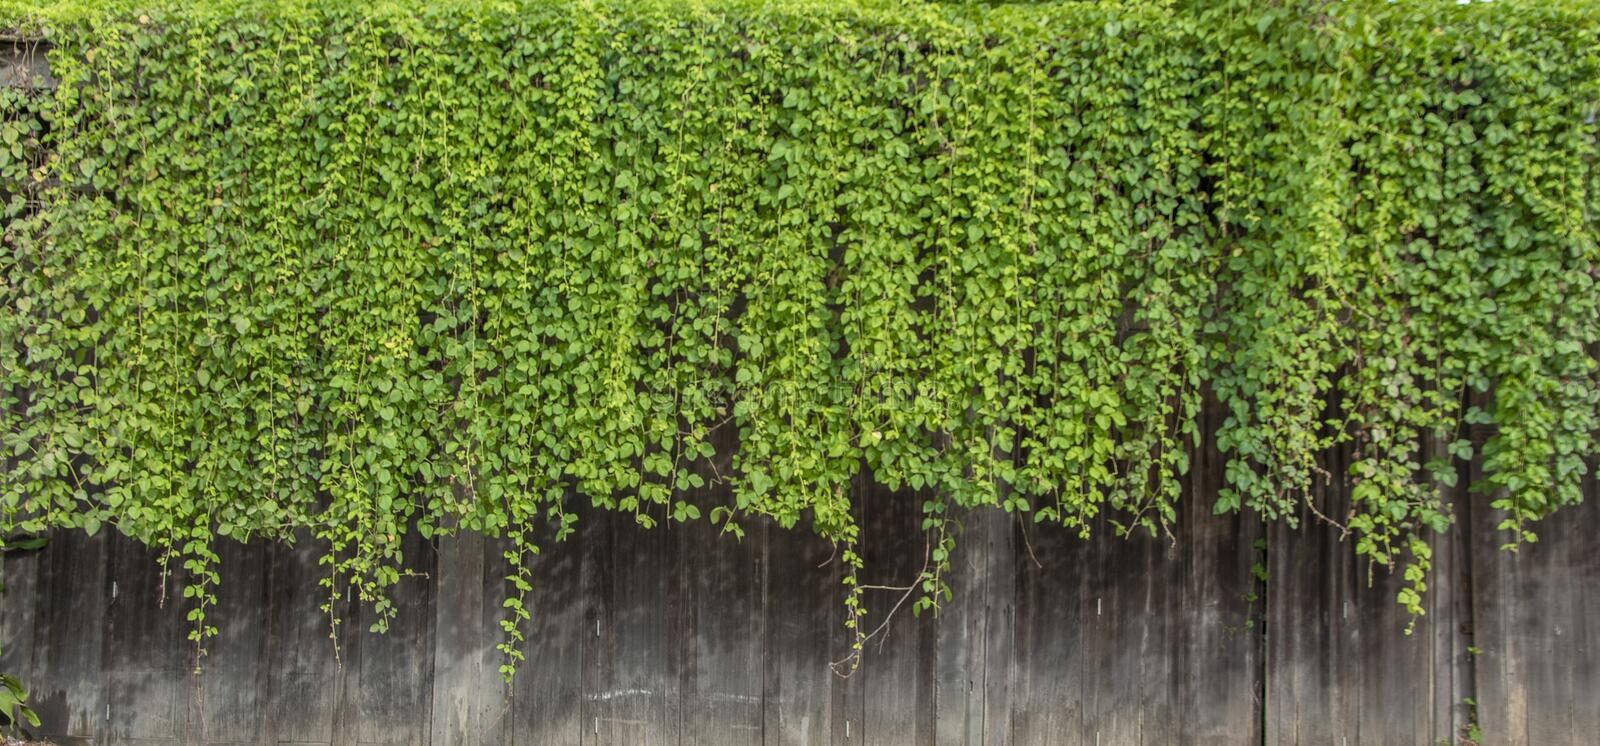 Natural green ivy vine plants wall from wood canopy royalty free stock image